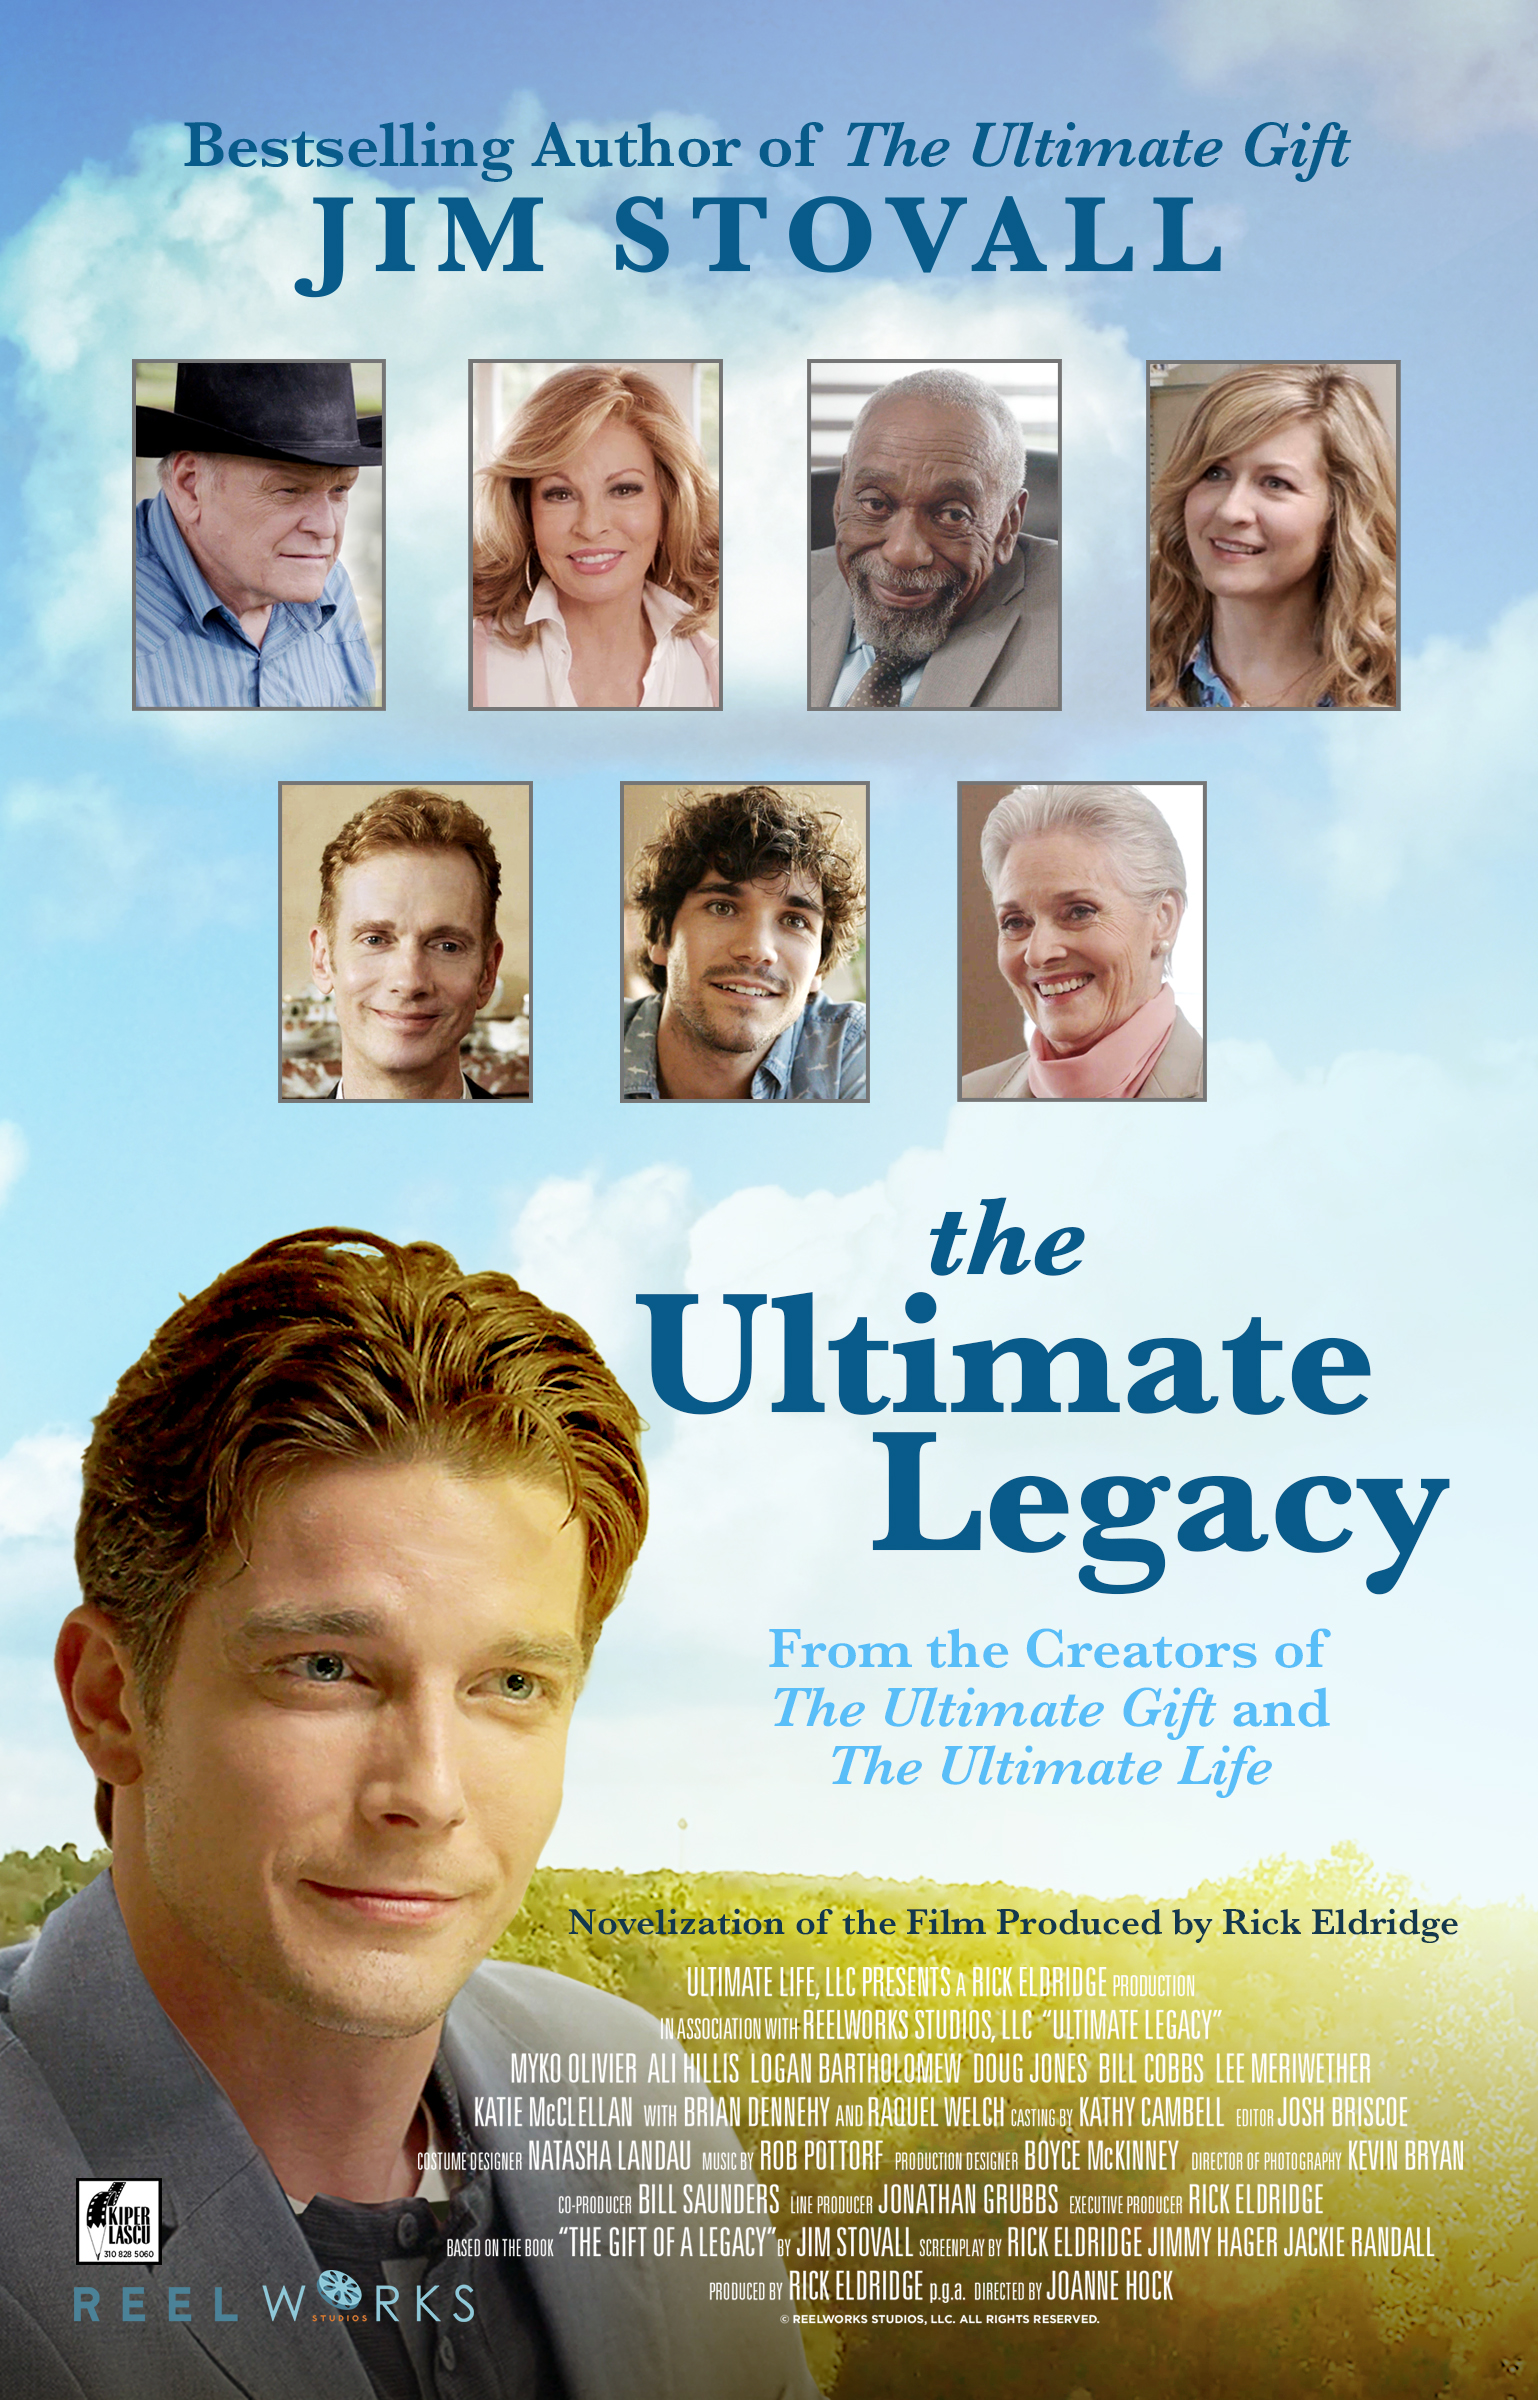 The Ultimate Legacy - Jim Stovall